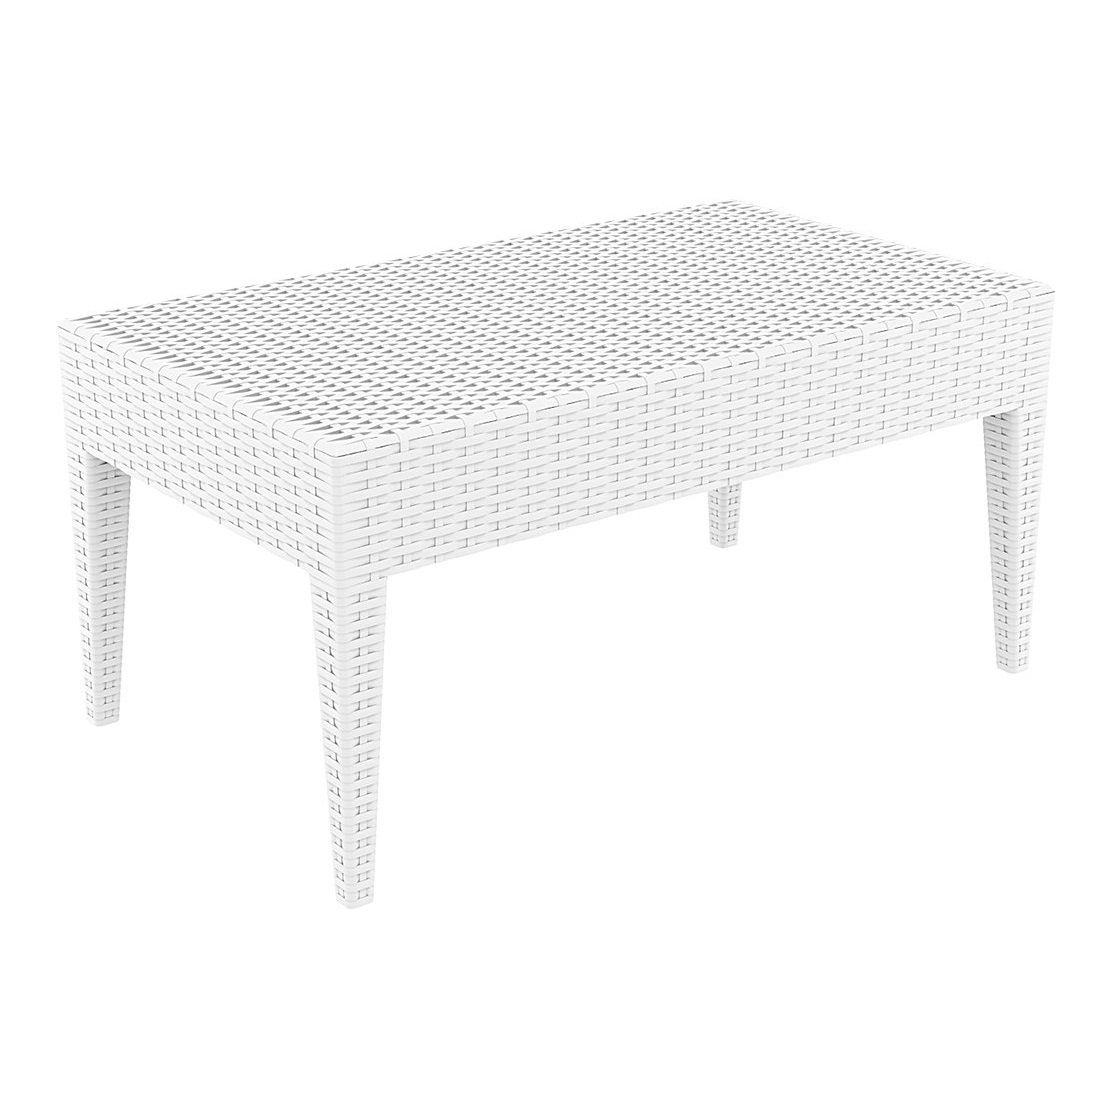 Tequila Lounge Table - White